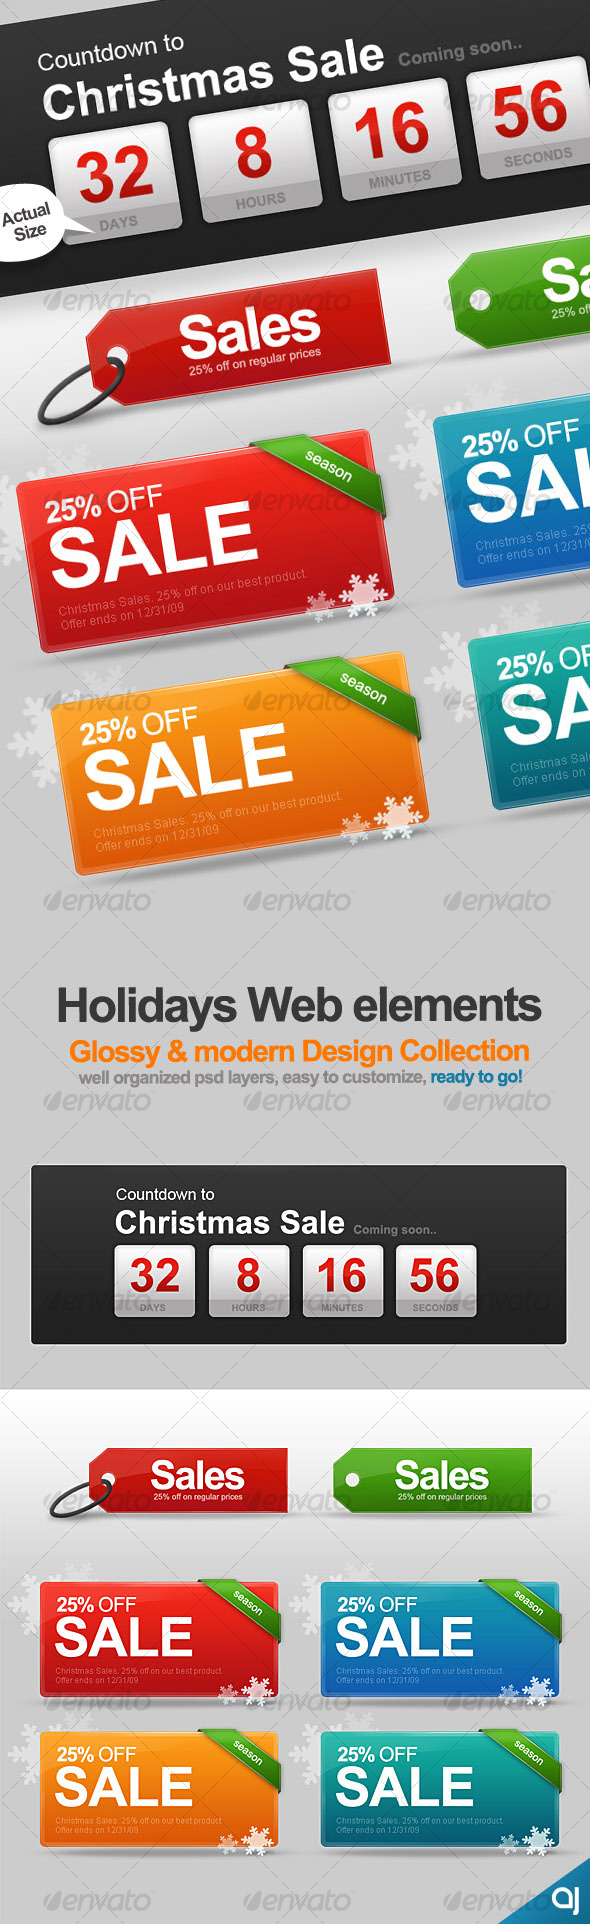 Holiday Web Elements collection